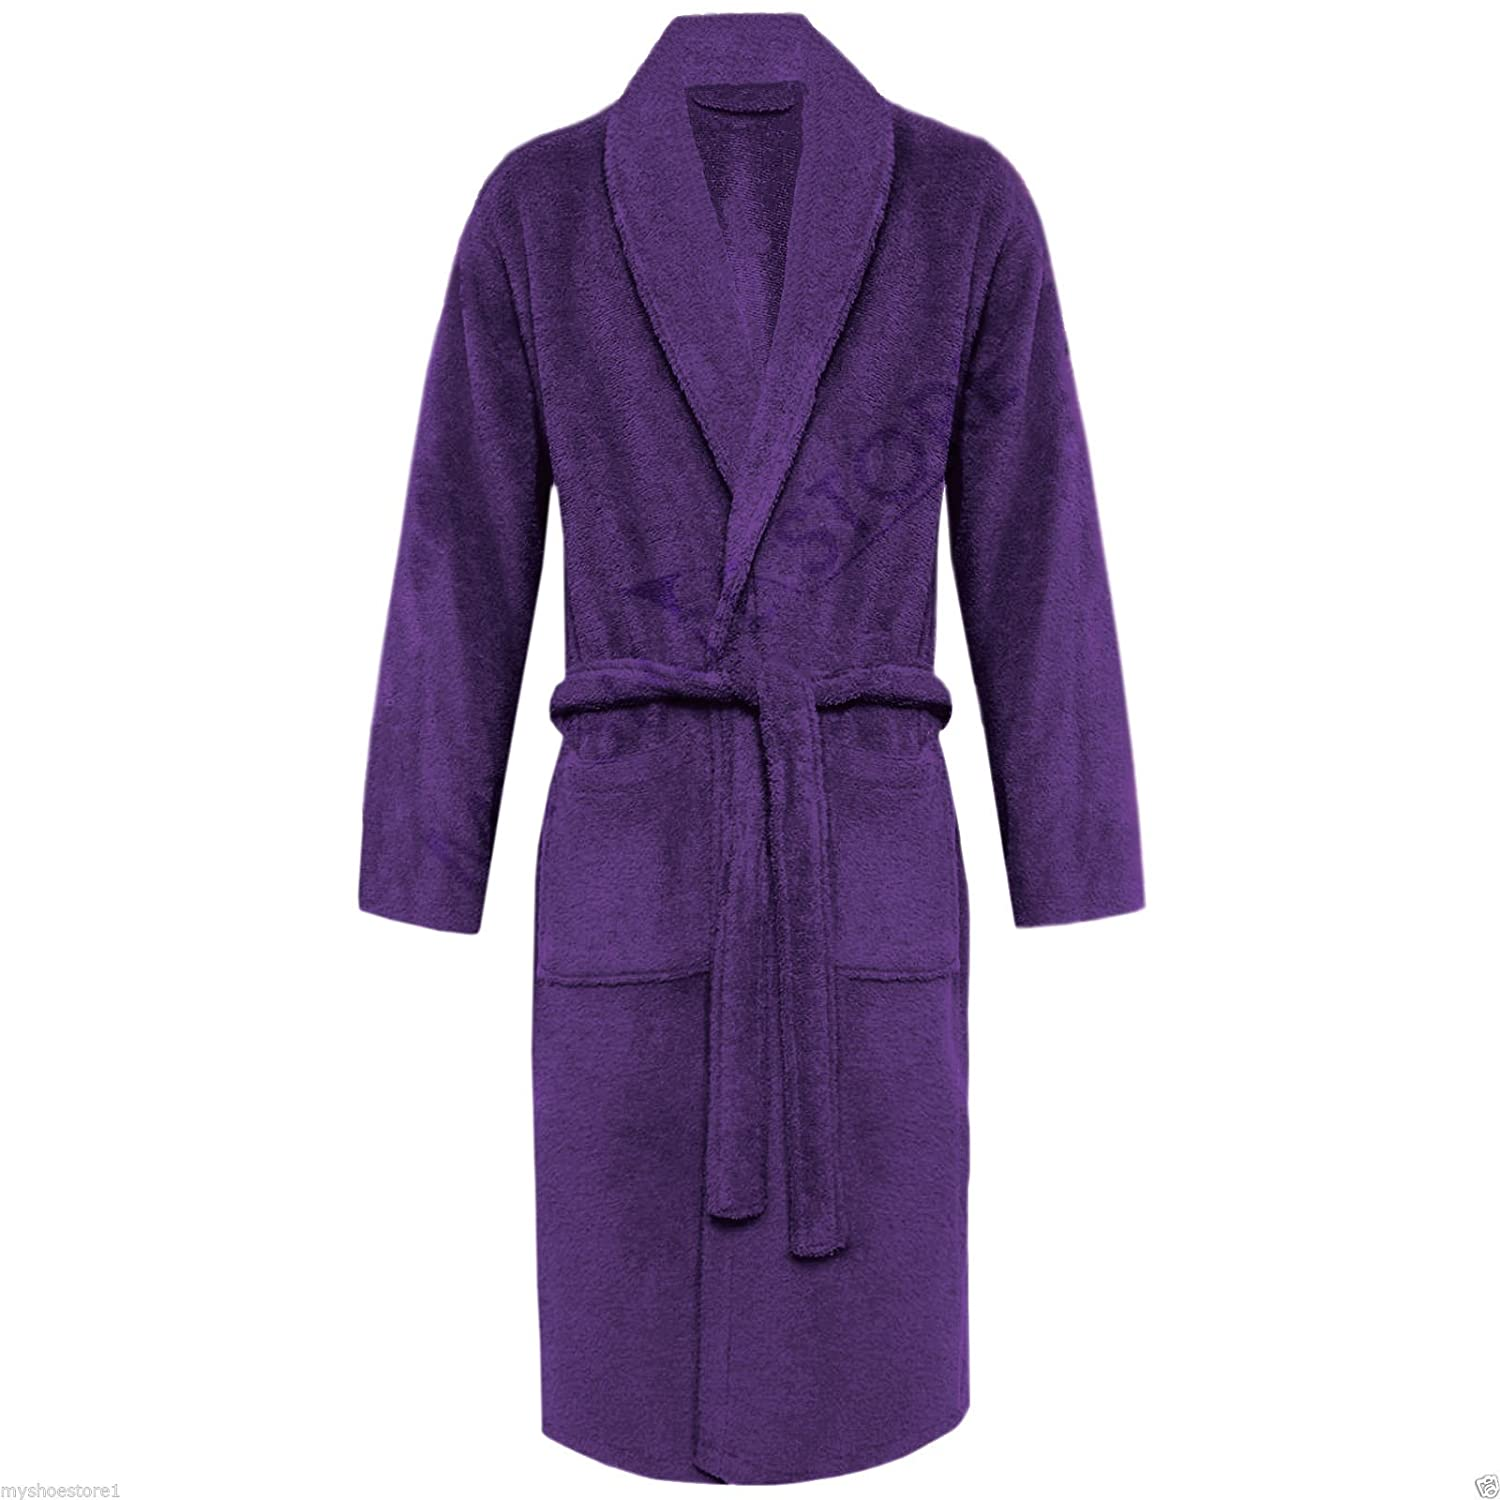 100/% EGYPTIAN COTTON TERRY TOWELLING HOODED BATH ROBE UNISEX DRESSING GOWN TOWEL